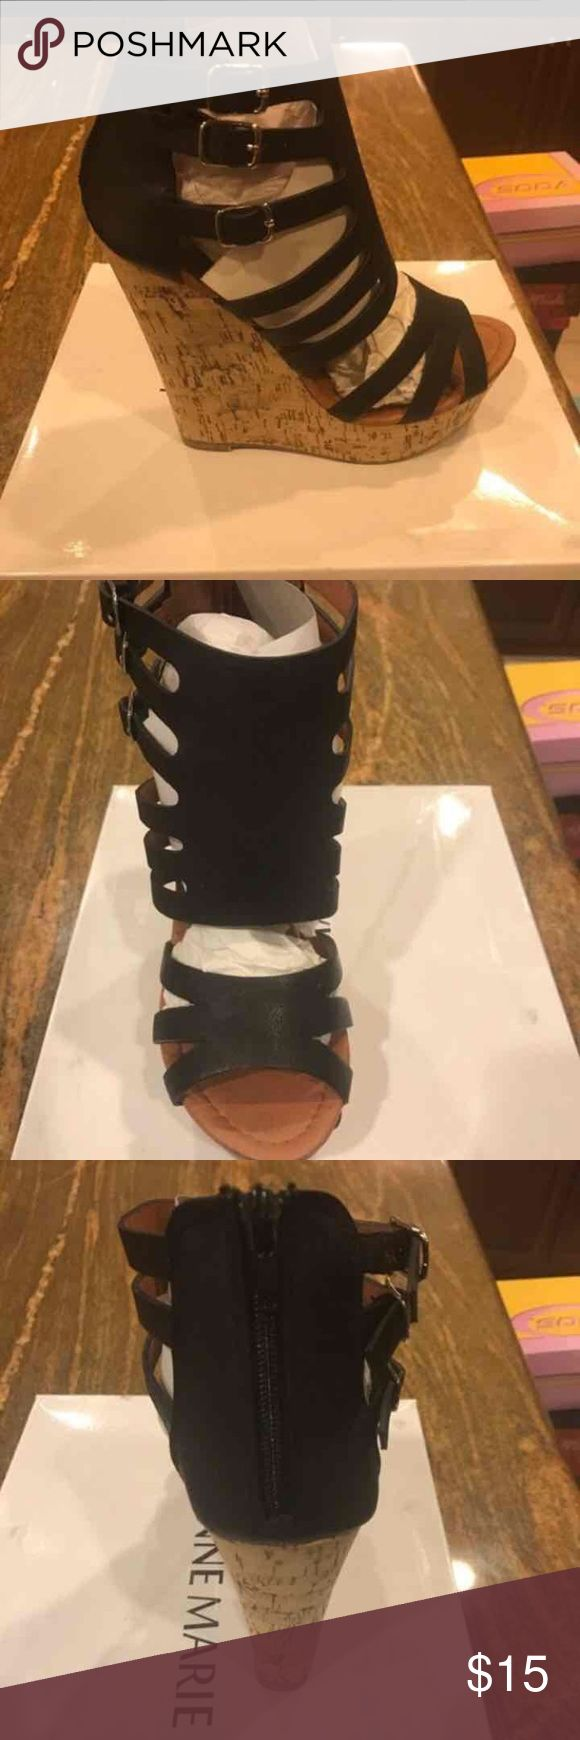 Brand New Black Wedges High Heels Shoes Size 8 Brand new, in box. Super cute Wedges High heels with faux cork design. Price is firm.  Size-8 Shoes Wedges